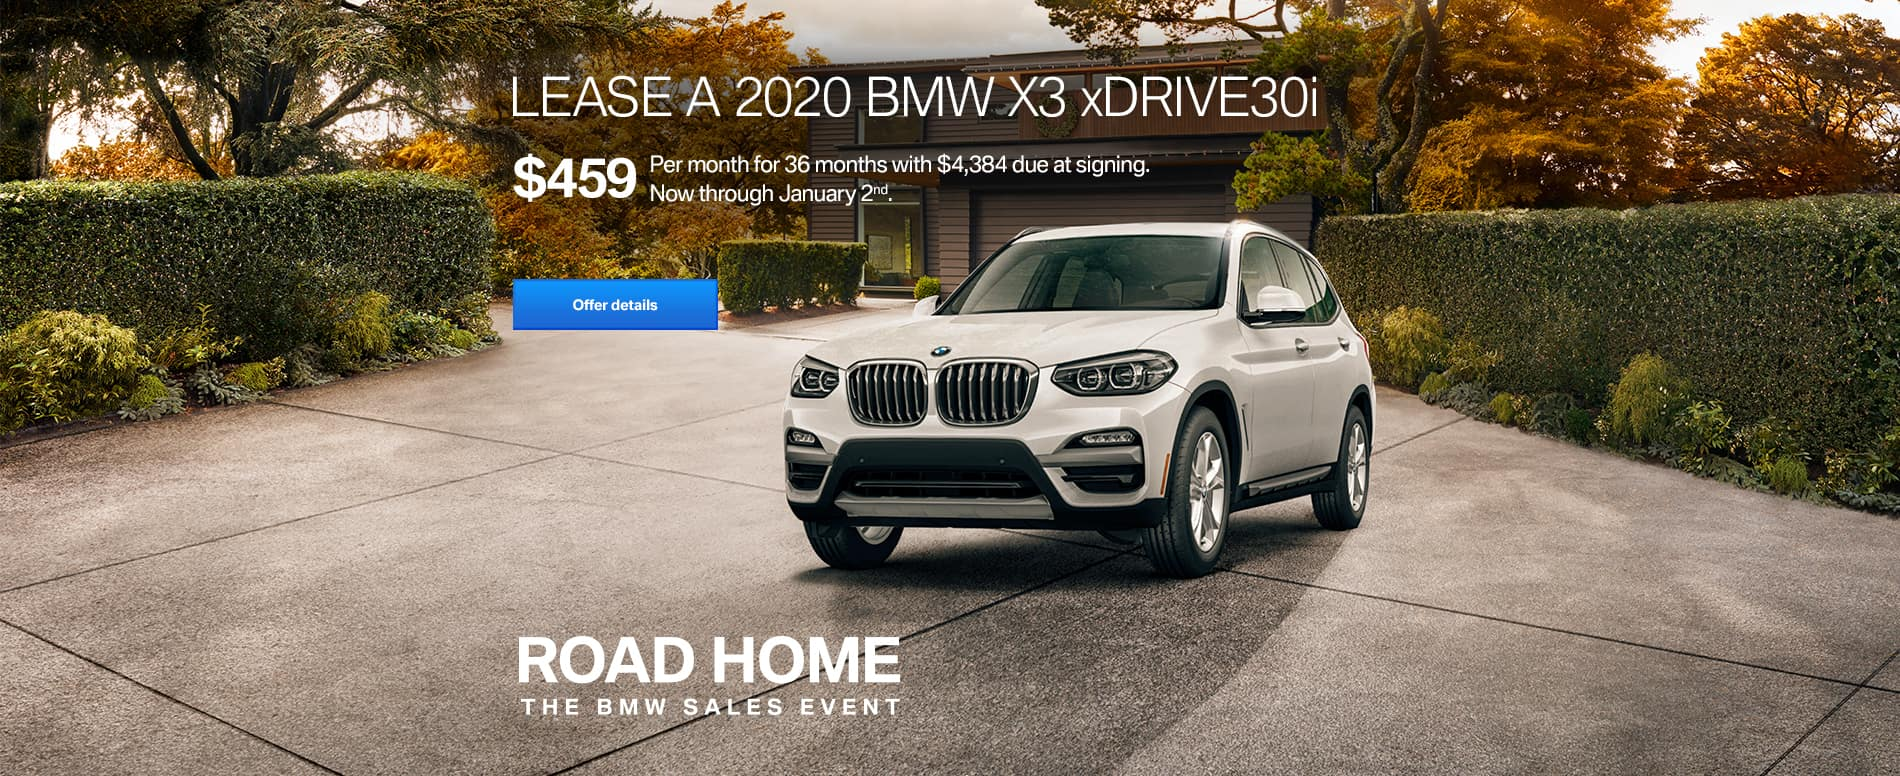 FMA3_DEC_PUSH_2020_BMW_X3_xDrive30i_459_Fall